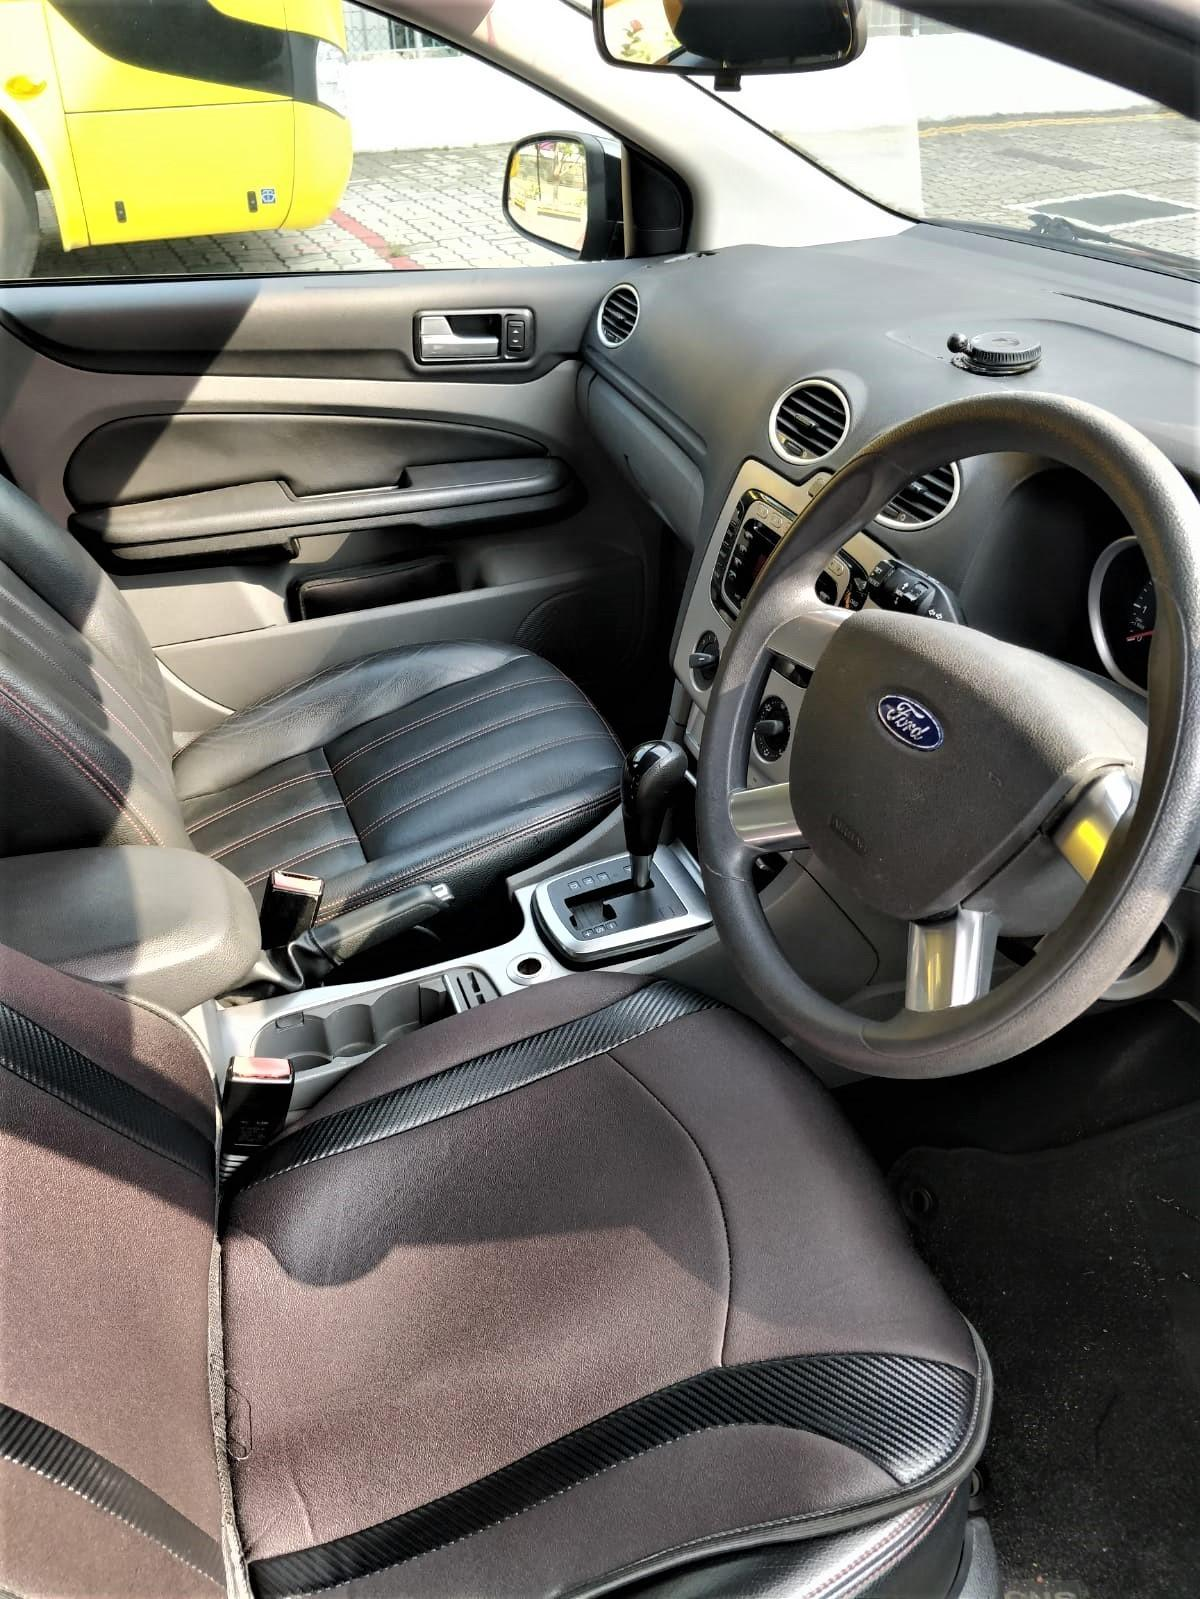 Ford Focus - Best rental rates, with fastest delivery!